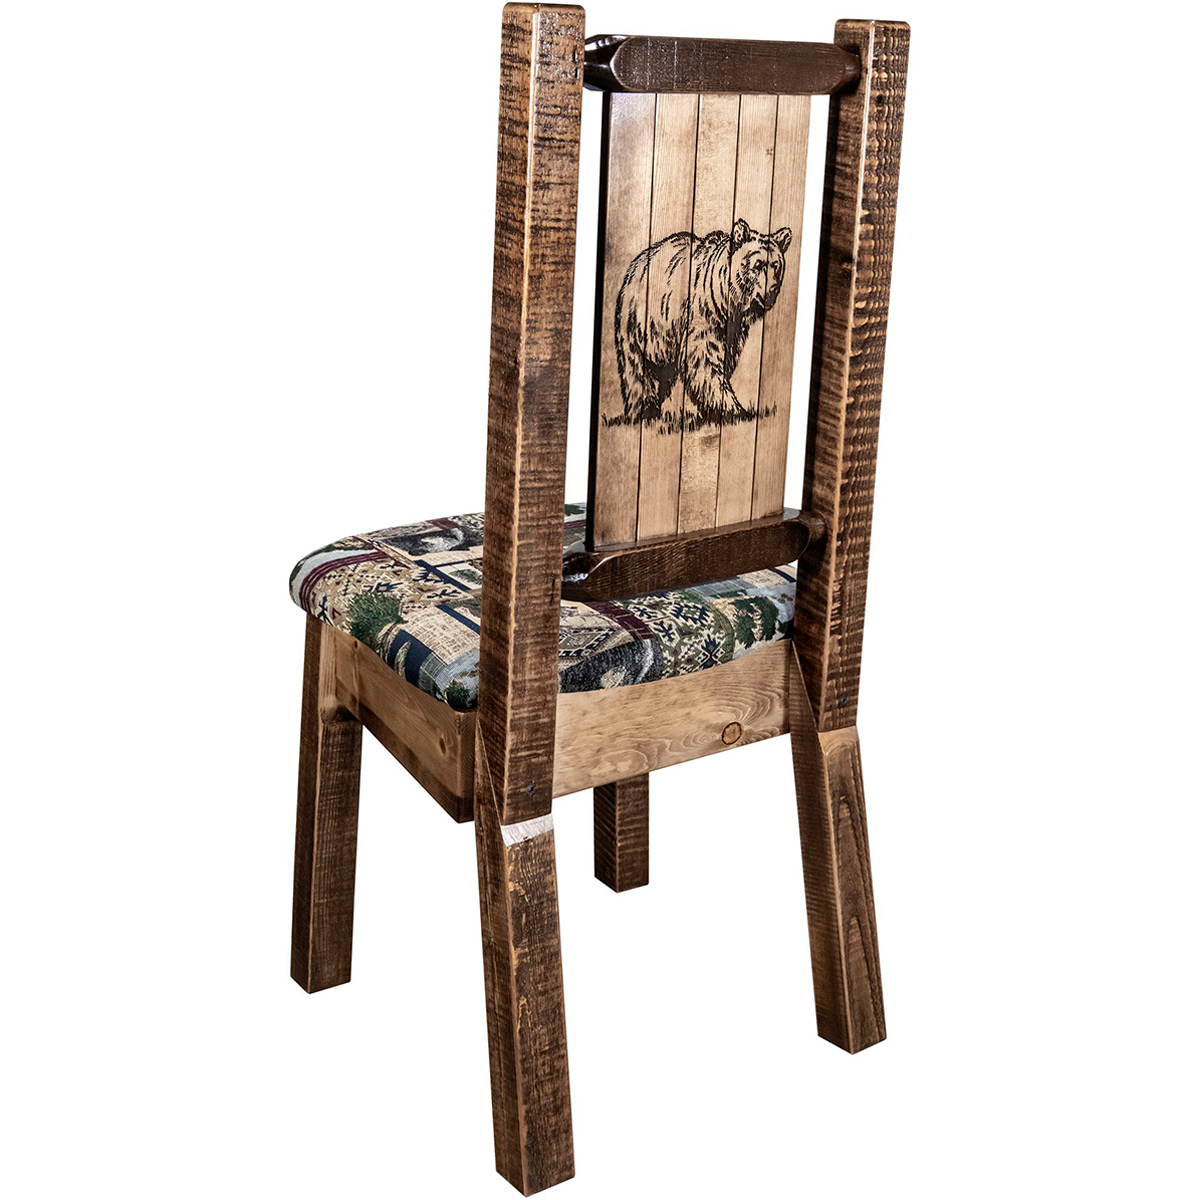 Ranchman's Woodland Upholstery Side Chair with Laser-Engraved Bear Design